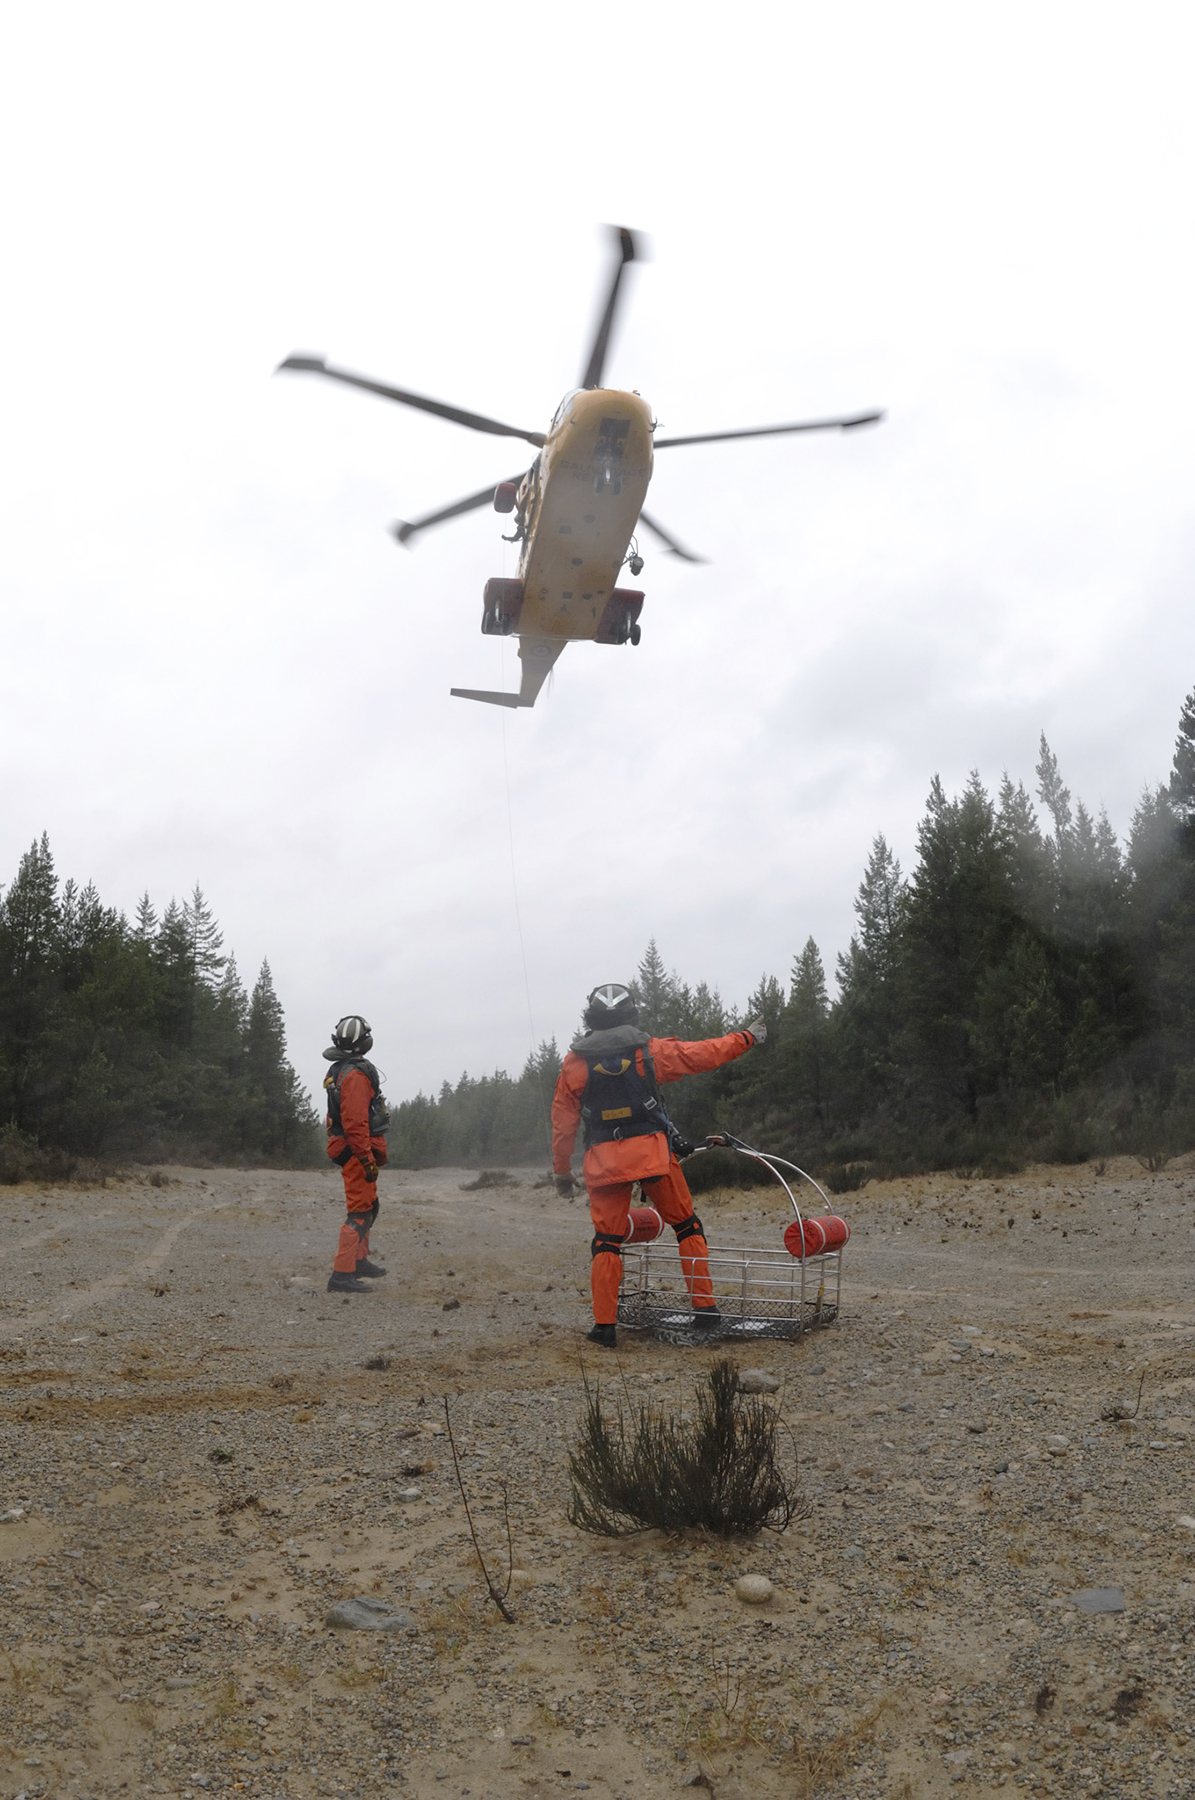 Search and rescue (SAR) technicians Corporal Martin Tessier and Sergeant Wayde Simpson prepare to send a SAR basket up to a CH-149 Cormorant helicopter during a Cormorant training exercise on Savry Island, British Columbia, on February 14, 2007. PHOTO:  Private Kelly Mitton, cx2007-0061-05